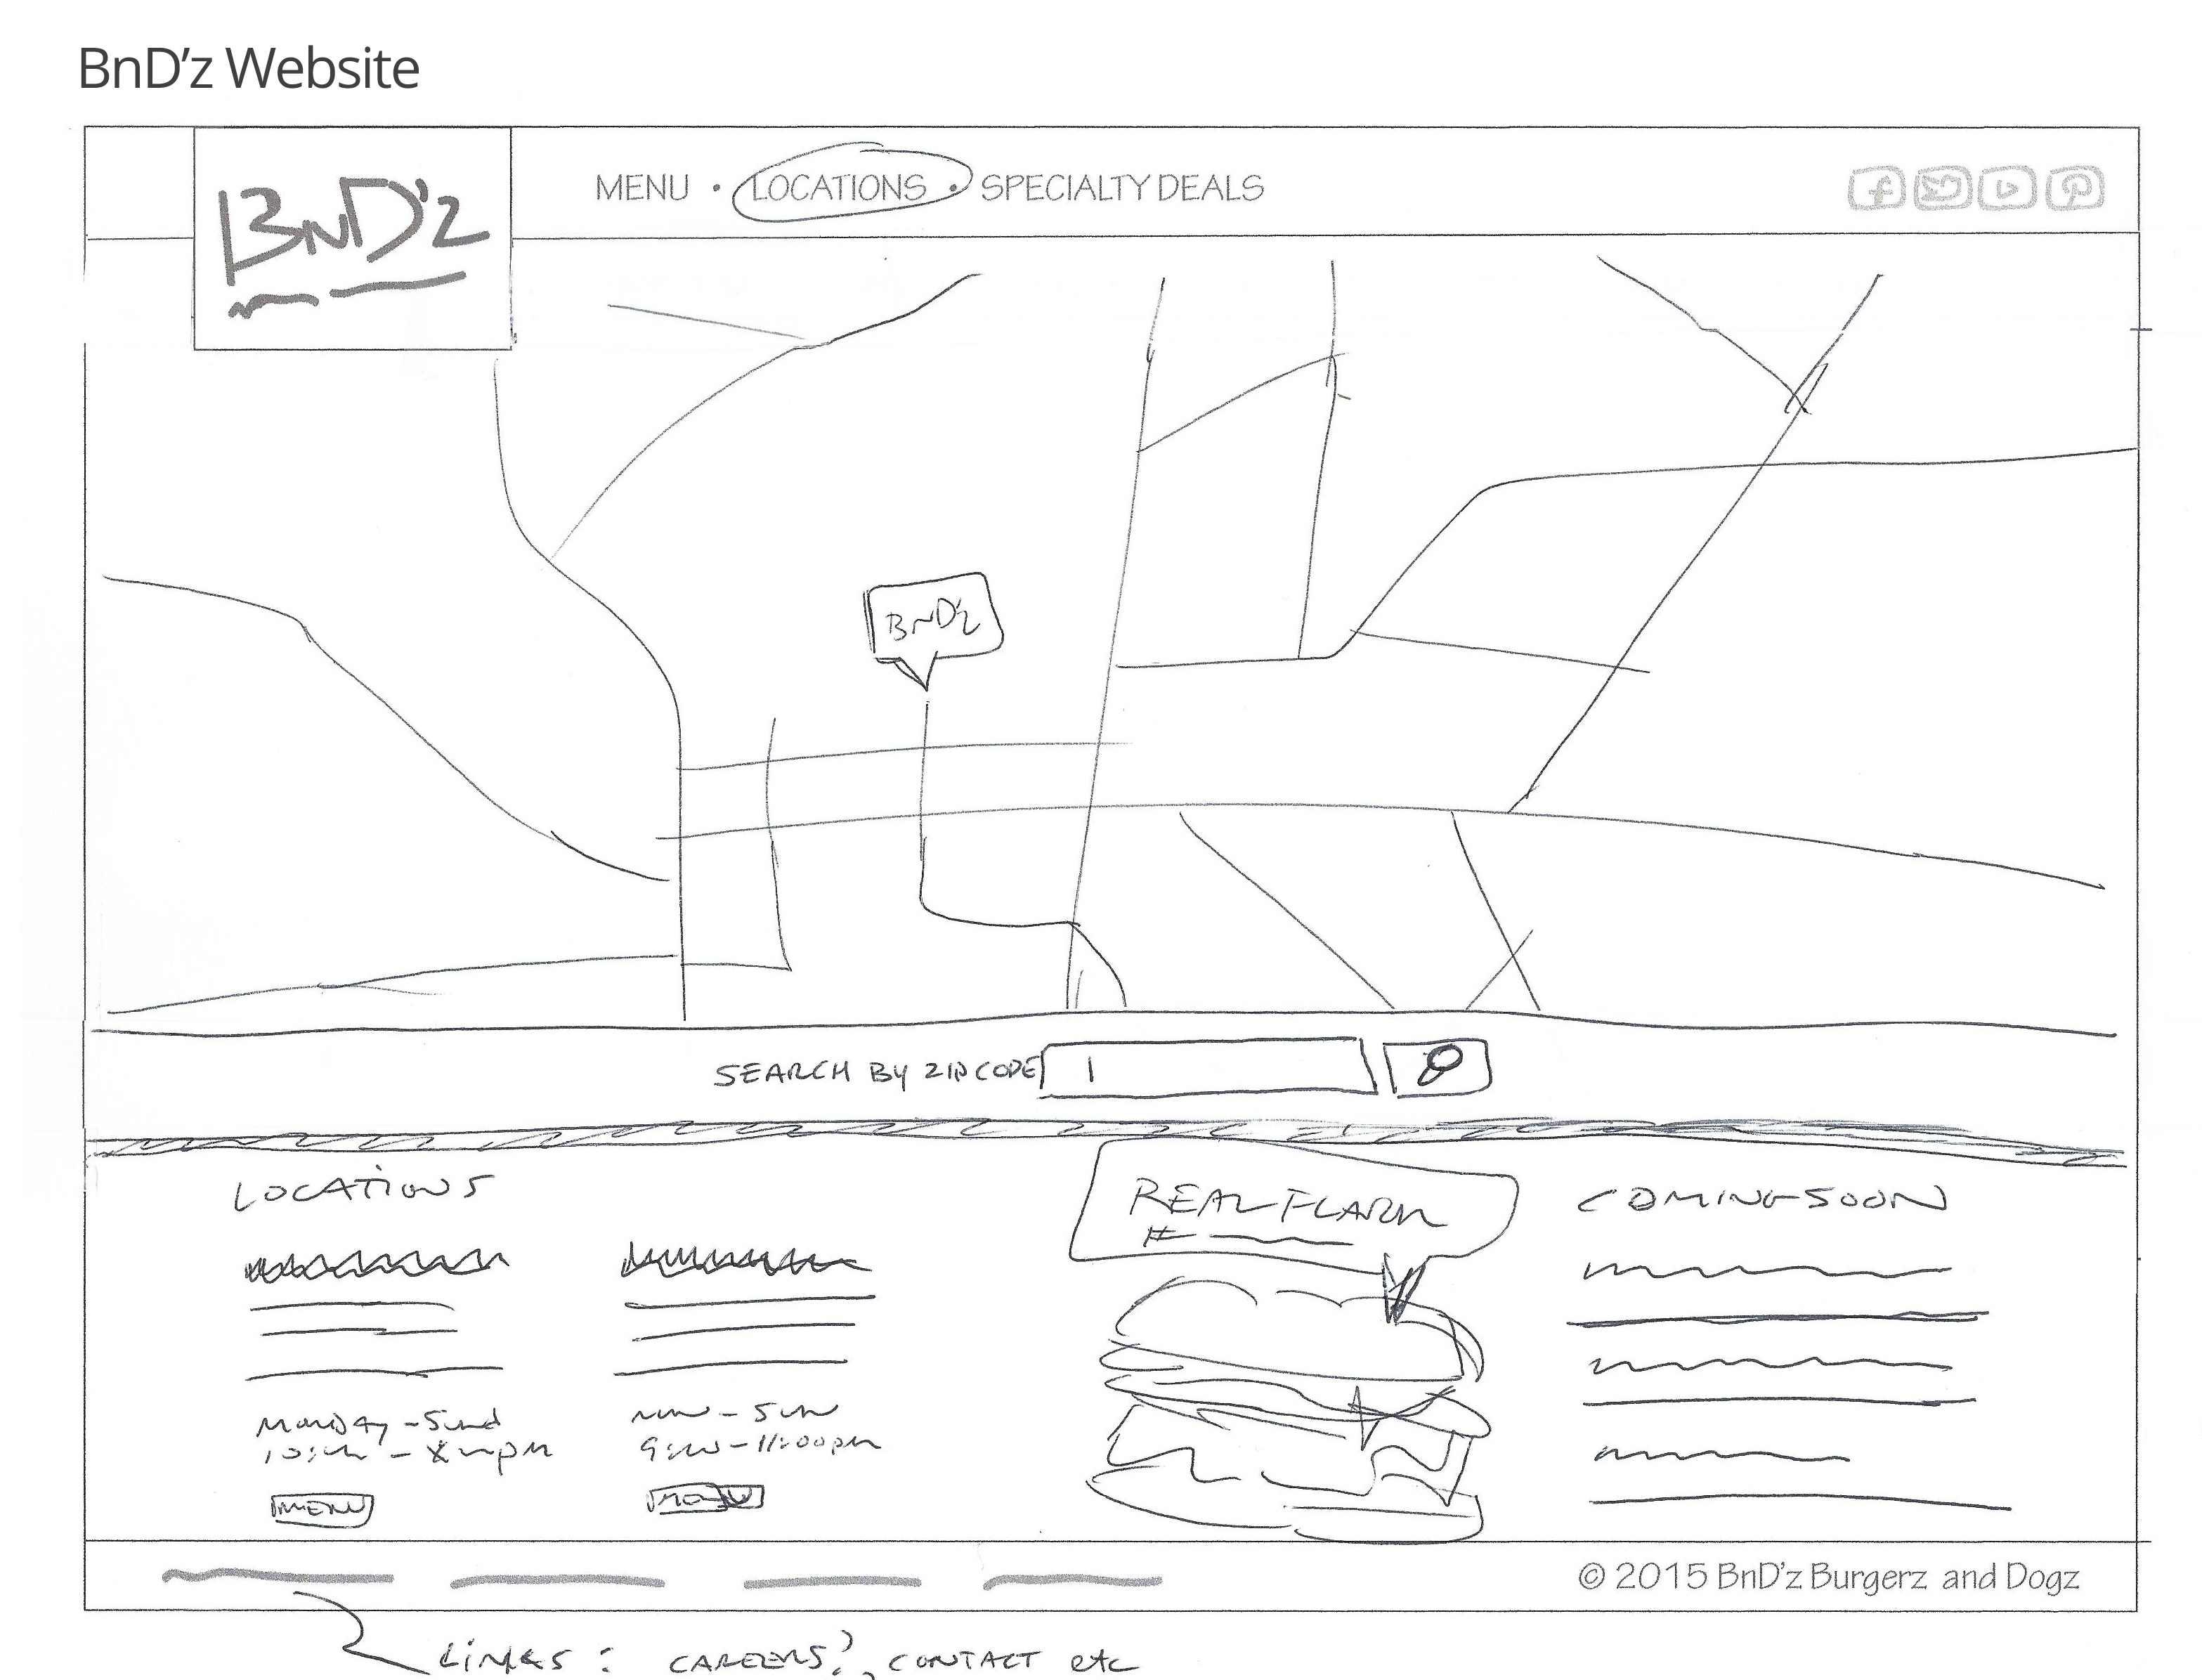 BnDz Website Sketch